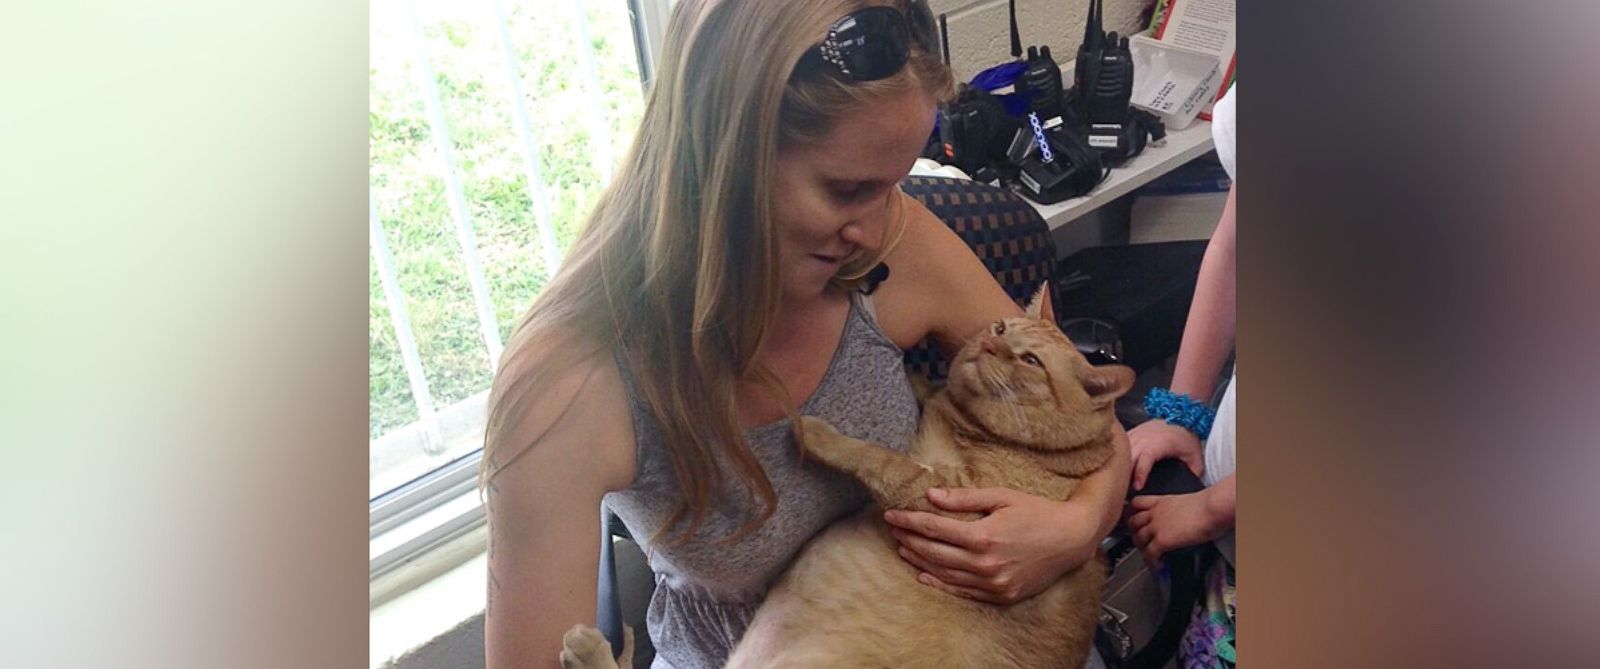 PHOTO: Symba the 35-pound cat has been adopted by Kiah Berkeley and Peter Sorkin of Mount Rainier, Maryland.